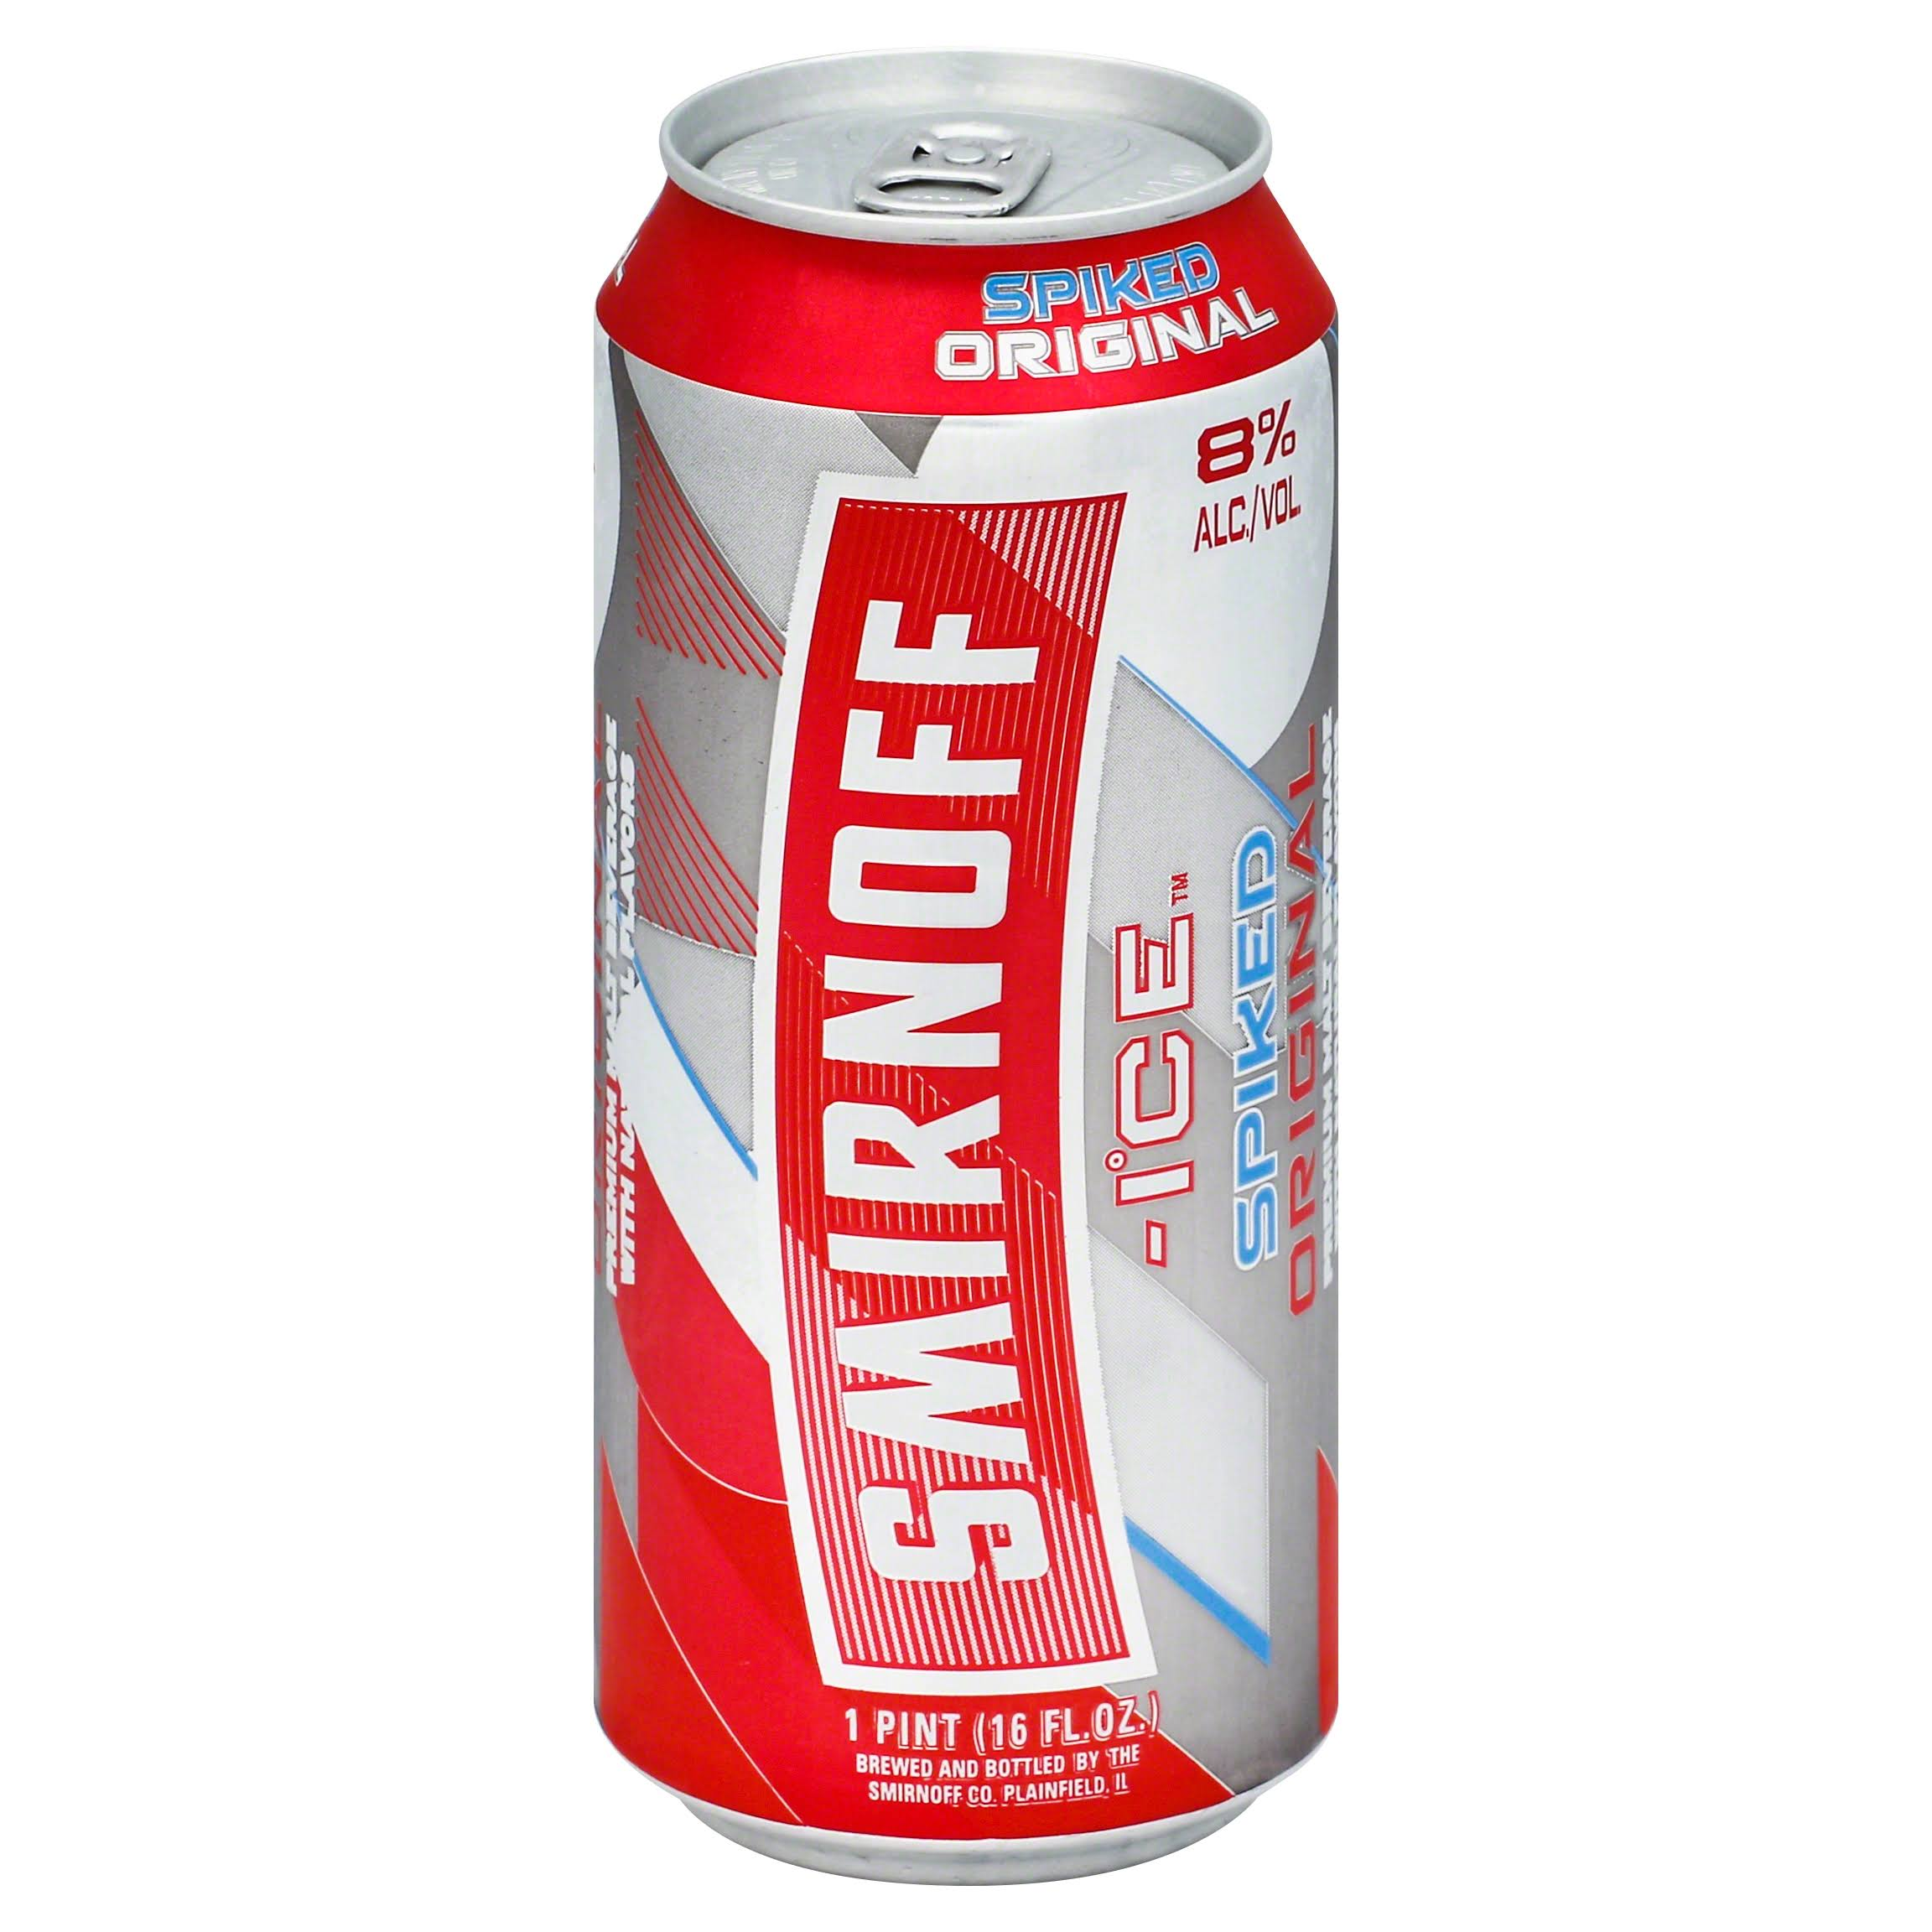 Smirnoff Ice Malt Beverage, Premium, Spiked Original - 16 fl oz